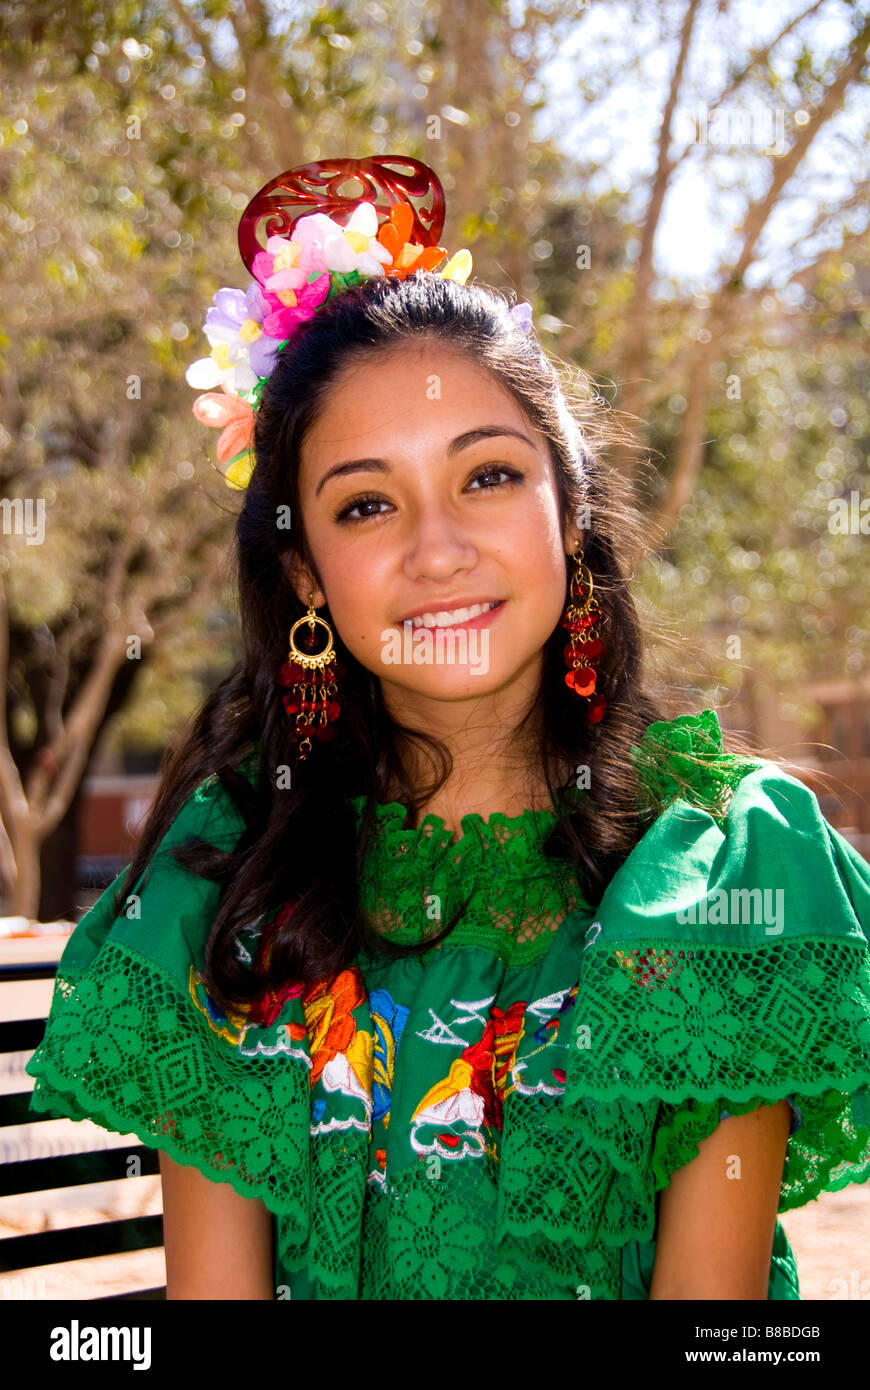 san antonio single hispanic girls I'd lived previously in brownsville, san antonio, el paso, and houston, and i'd   of latinos, it irked me that the city was obsessed with latin american culture   austin had tried and failed six times to pass a single-member-district ballot  initiative  i passed two very proud parents and a girl in a flaming hot-pink  quinceañera.